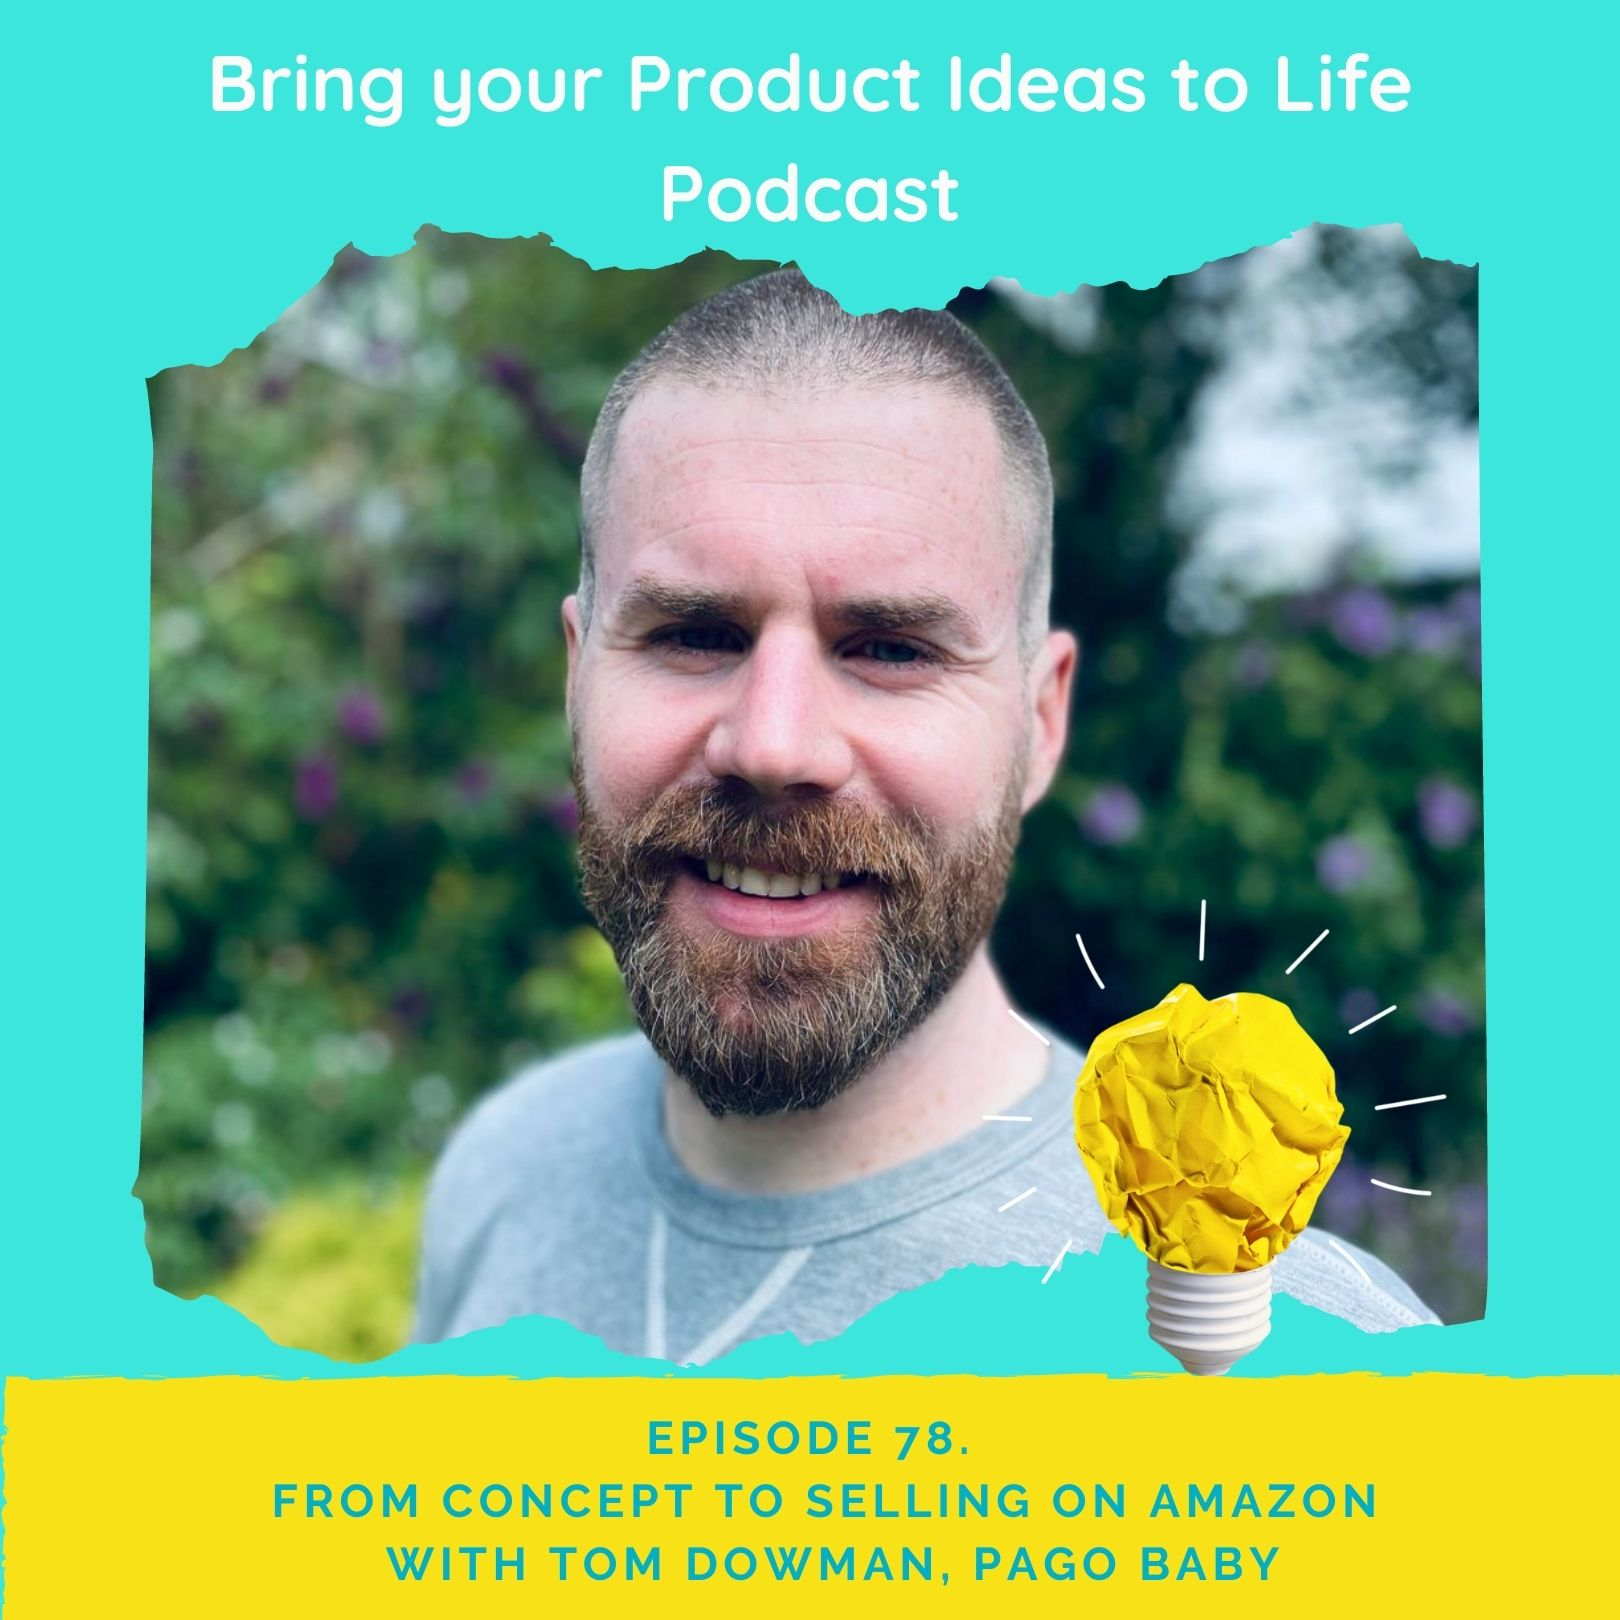 Artwork for podcast Bring Your Product Ideas to Life